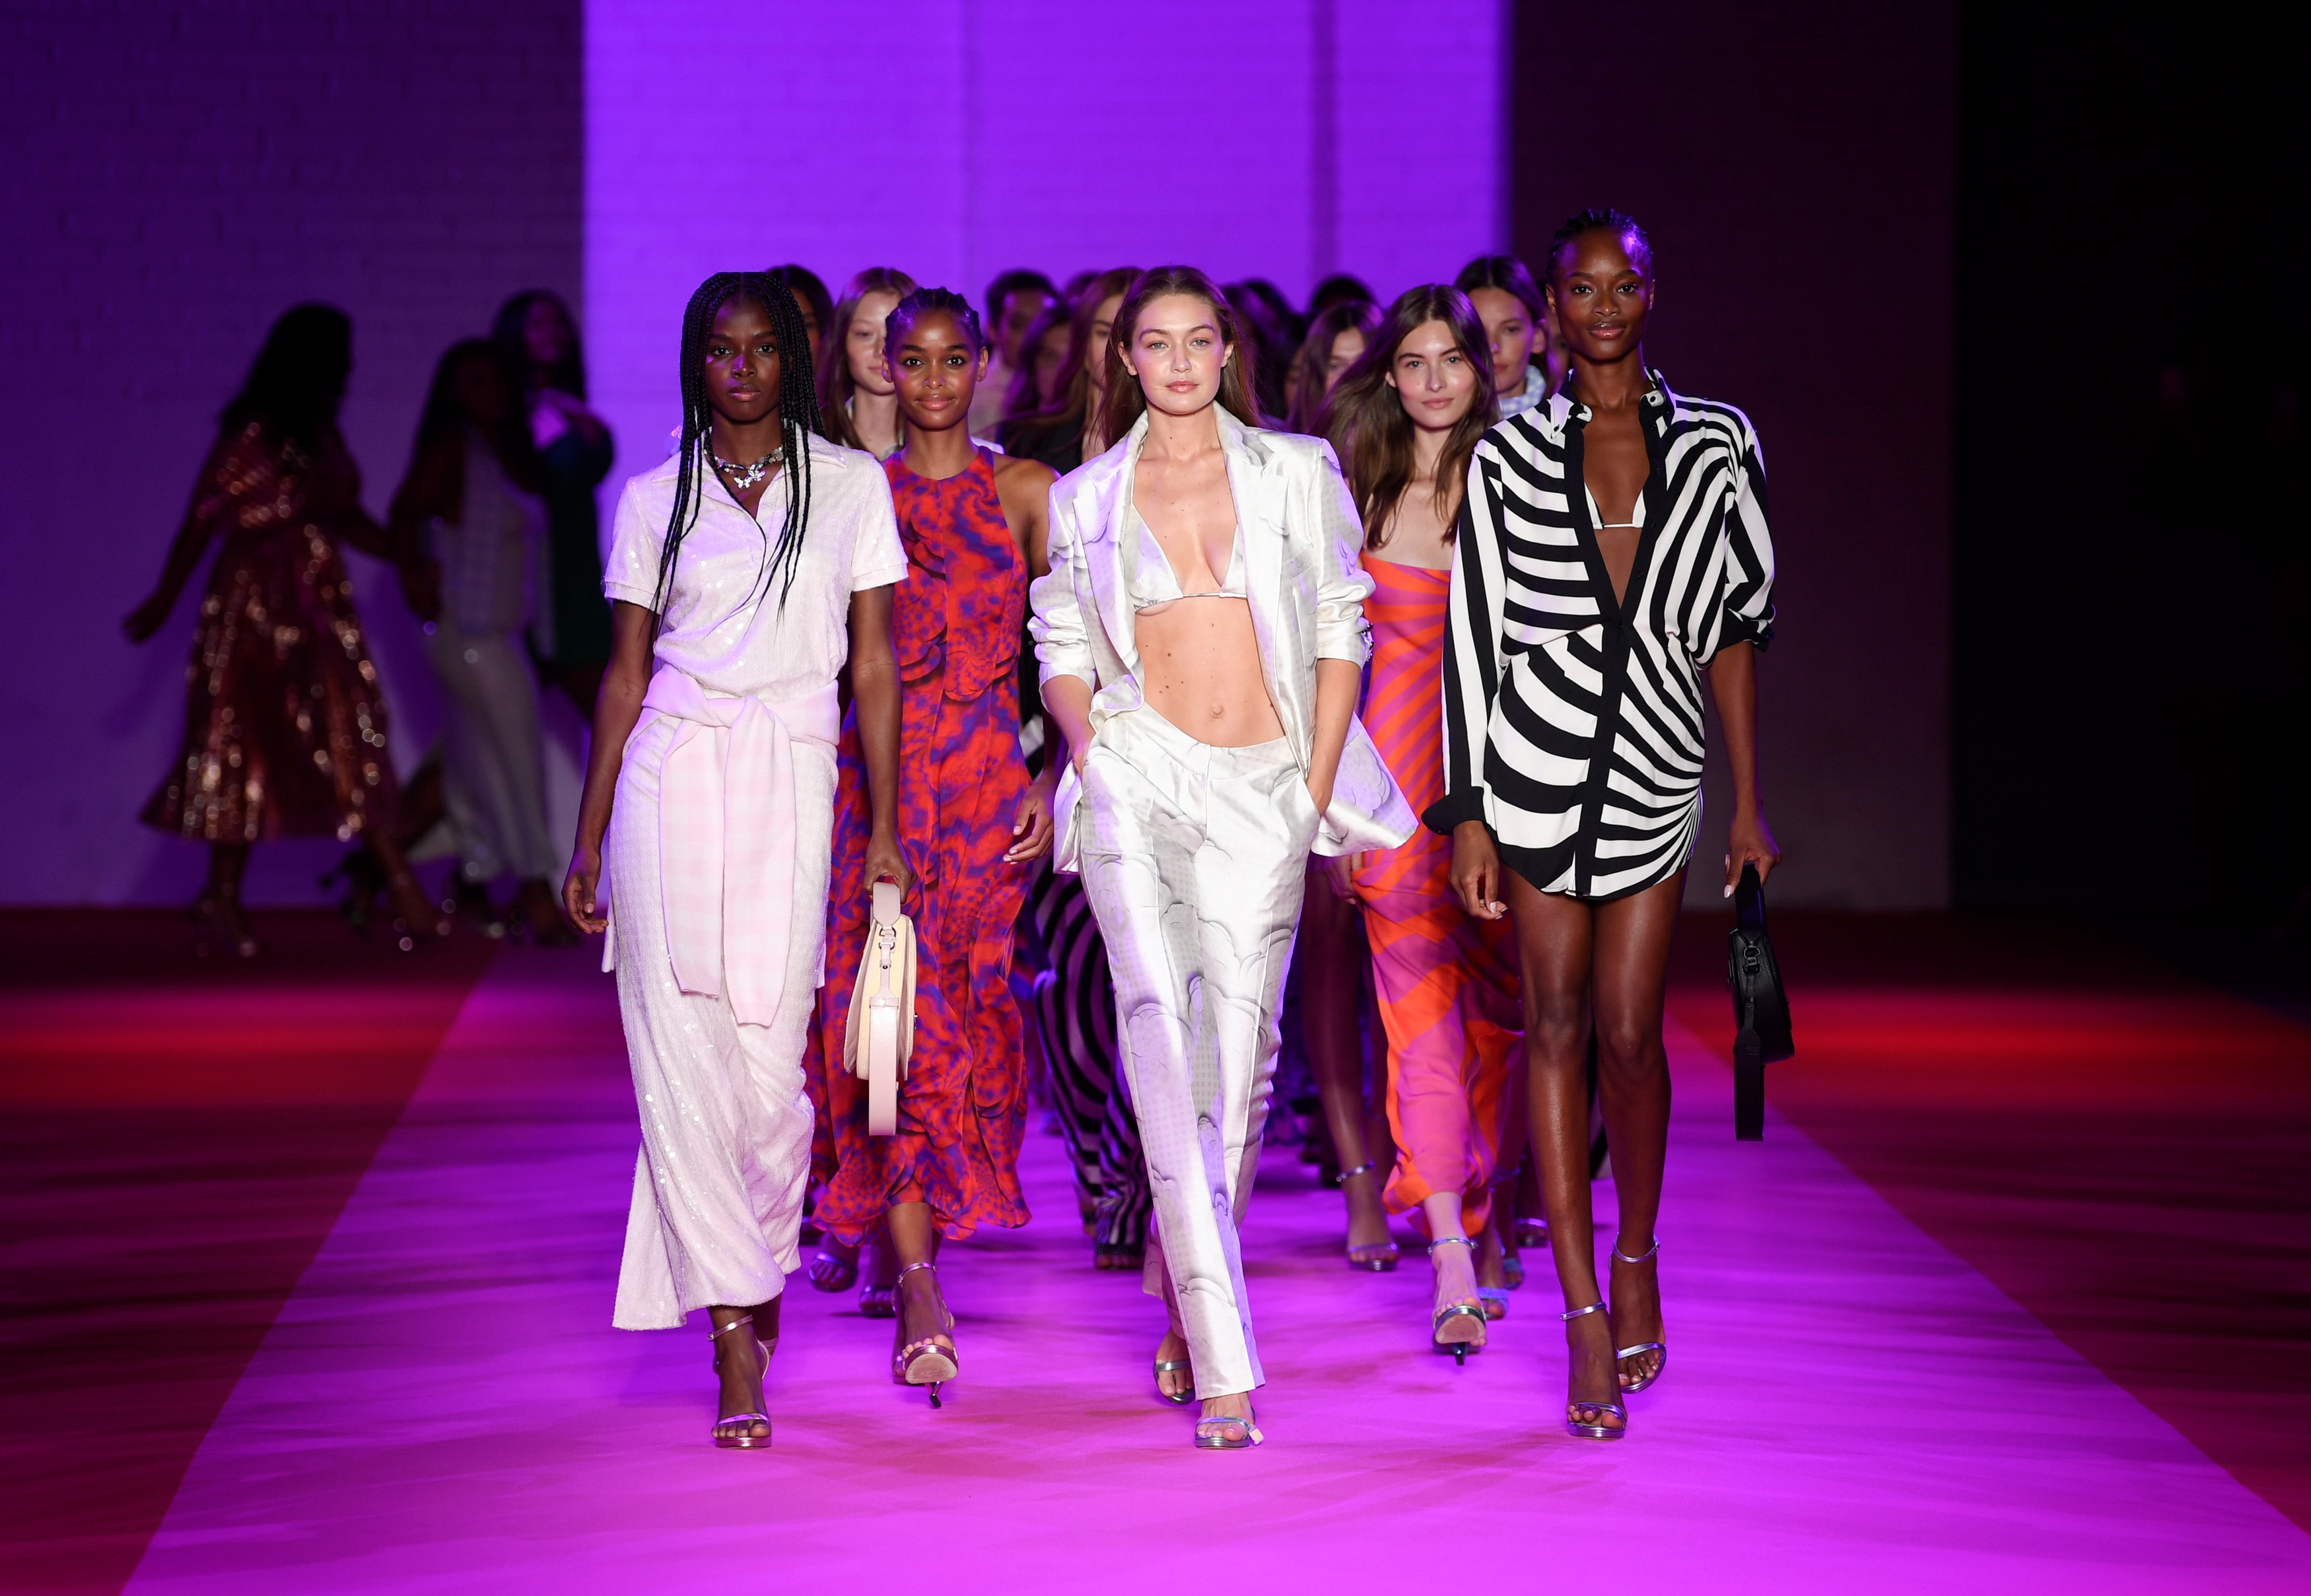 Models, including Gigi Hadid, center, walk the runway during the finale at the Brandon Maxwell spring/summer 2022 fashion show.(Evan Agostini/Invision/AP)